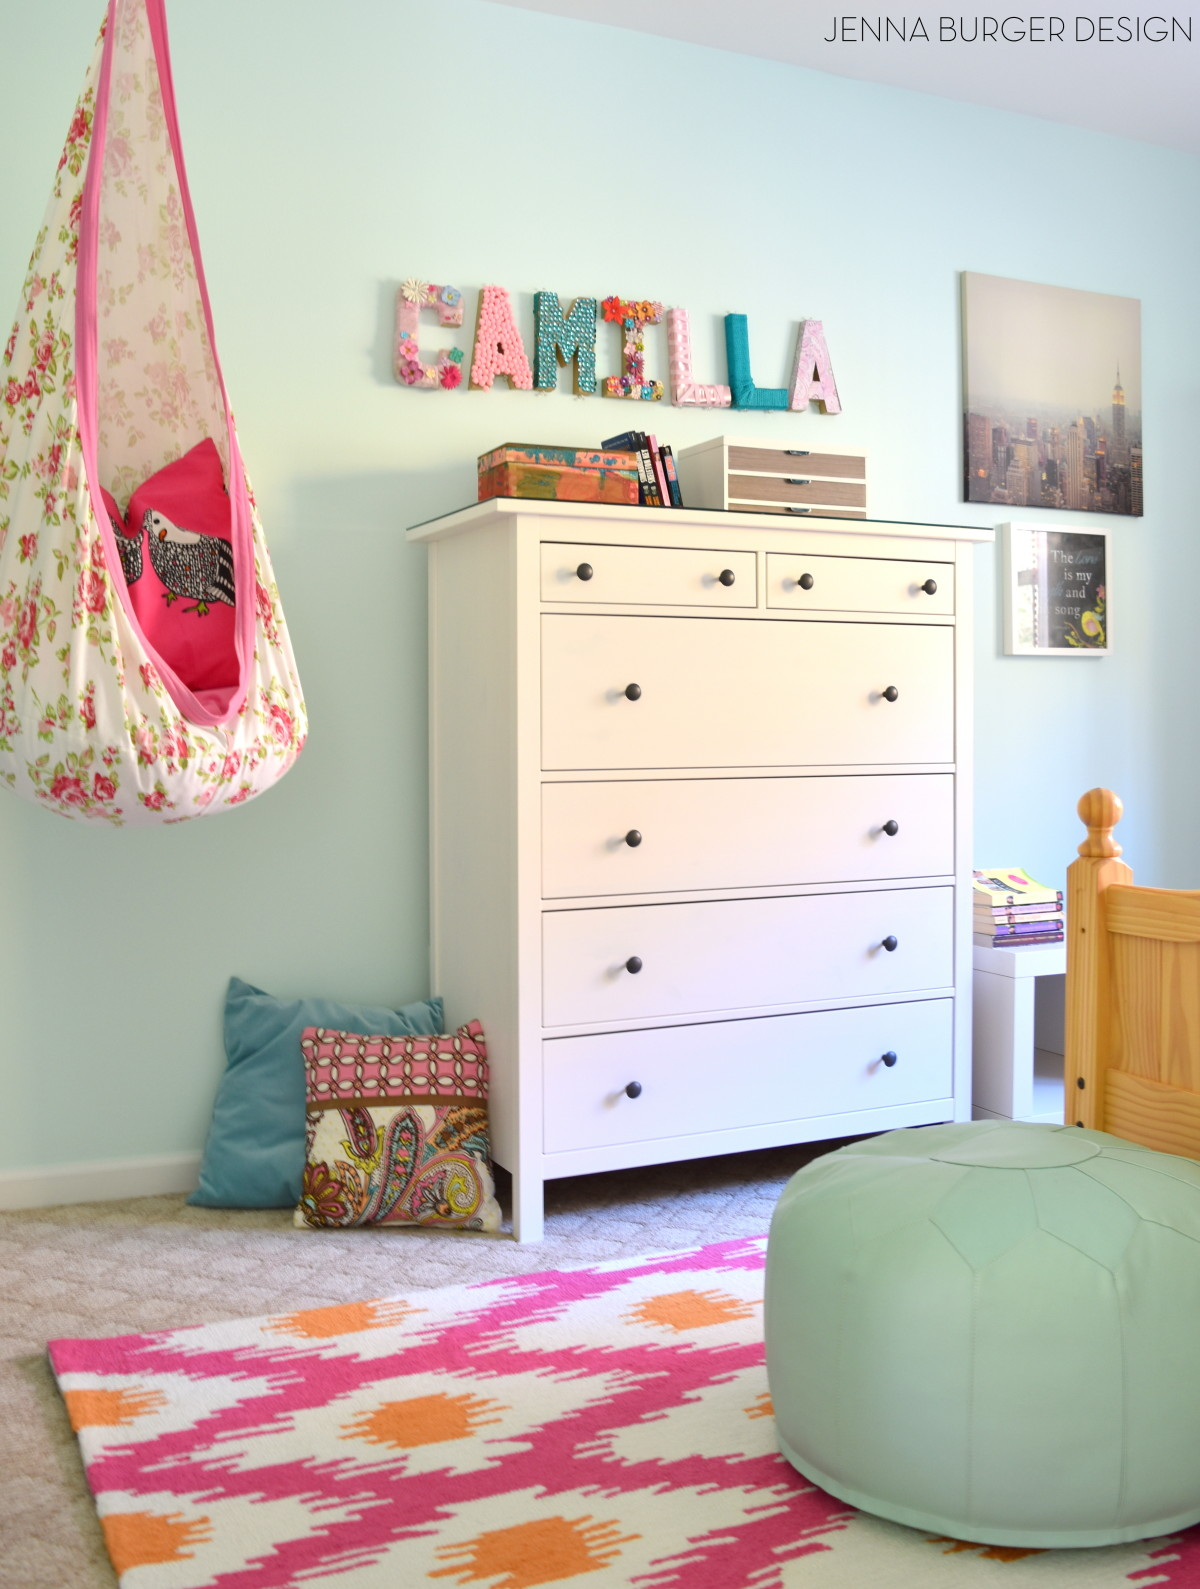 Fuschia turquoise bedroom makeover jenna burger for Bedroom ideas for 8 yr old girl